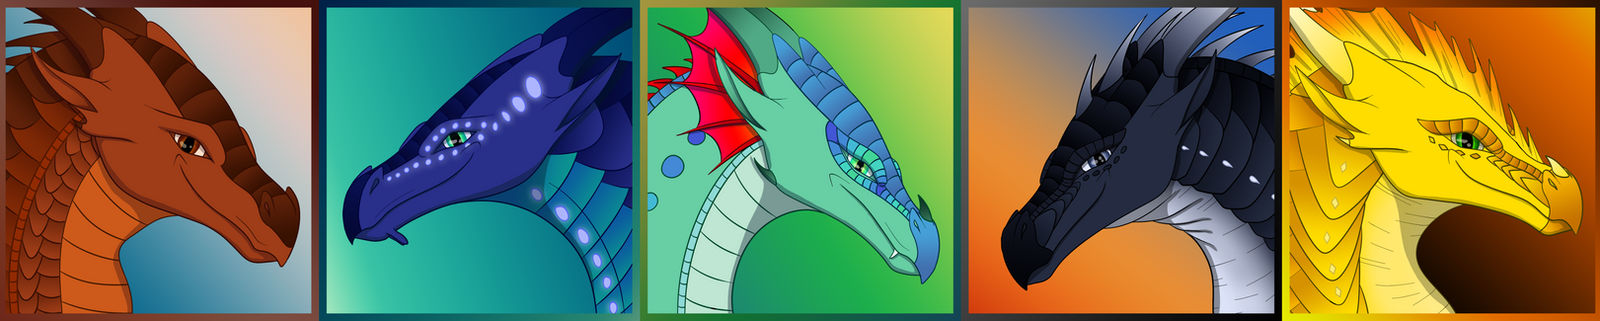 FREE Wings of Fire Dragonets of Destiny Icons